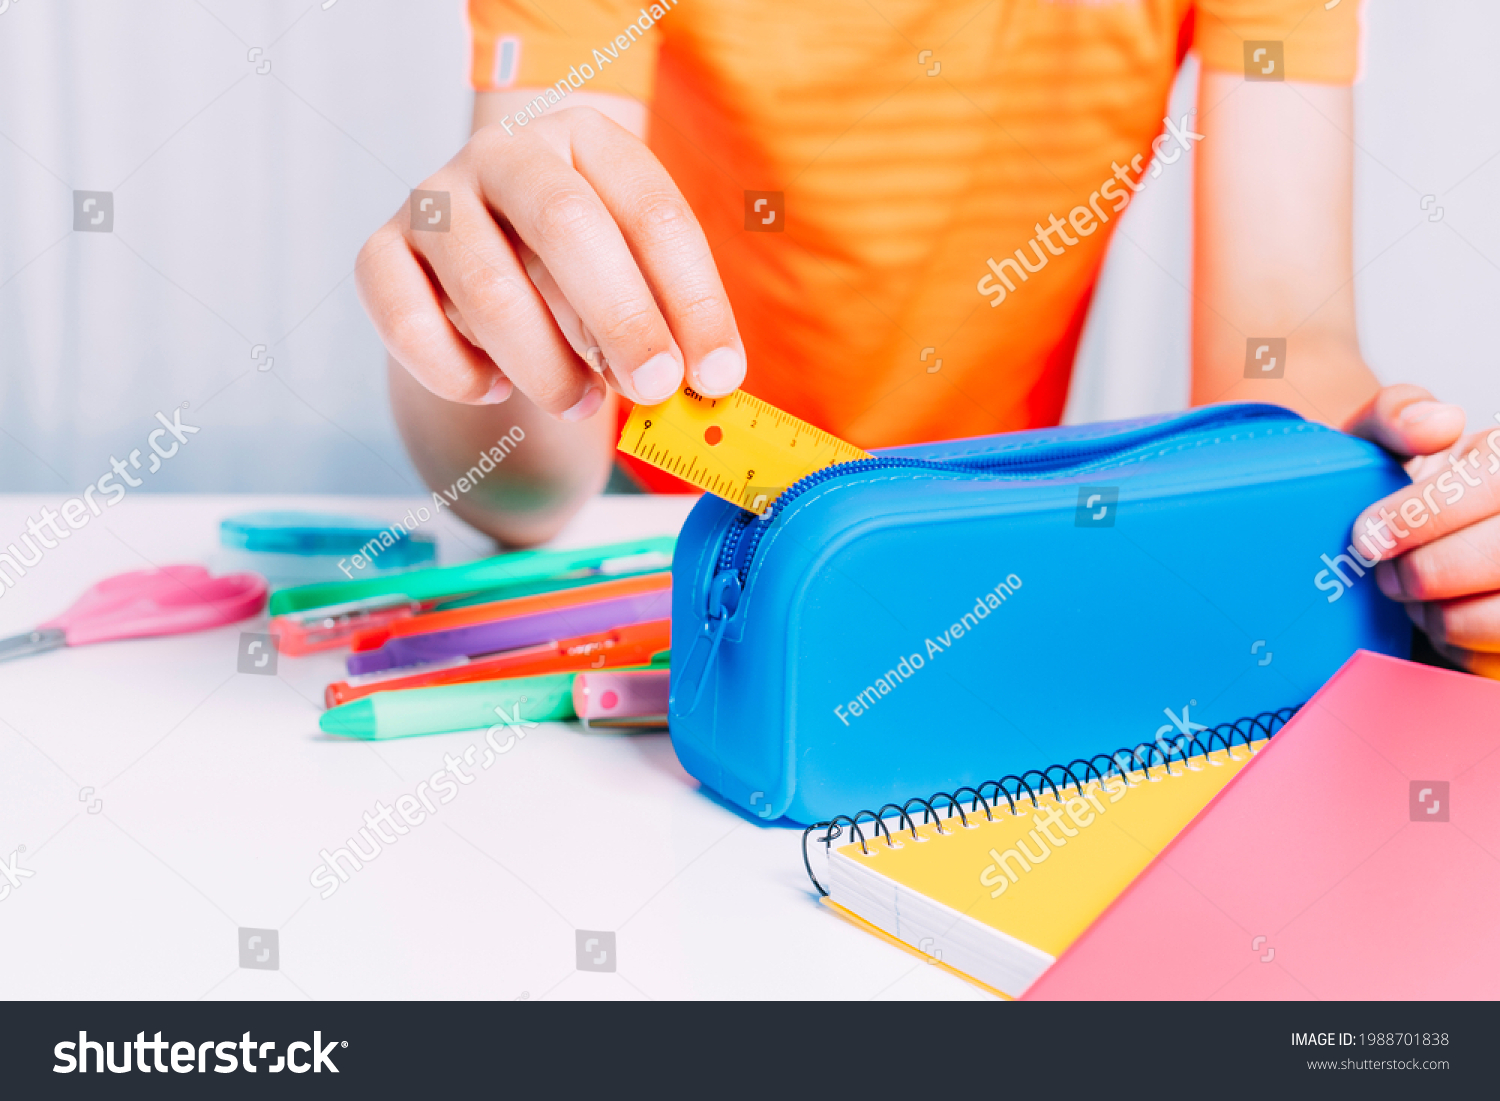 Boy keeping inside his blue pencil case all a small ruler and pencils, pencils, scissors, etc. Colorful notebooks on white table. Back to school concept #1988701838